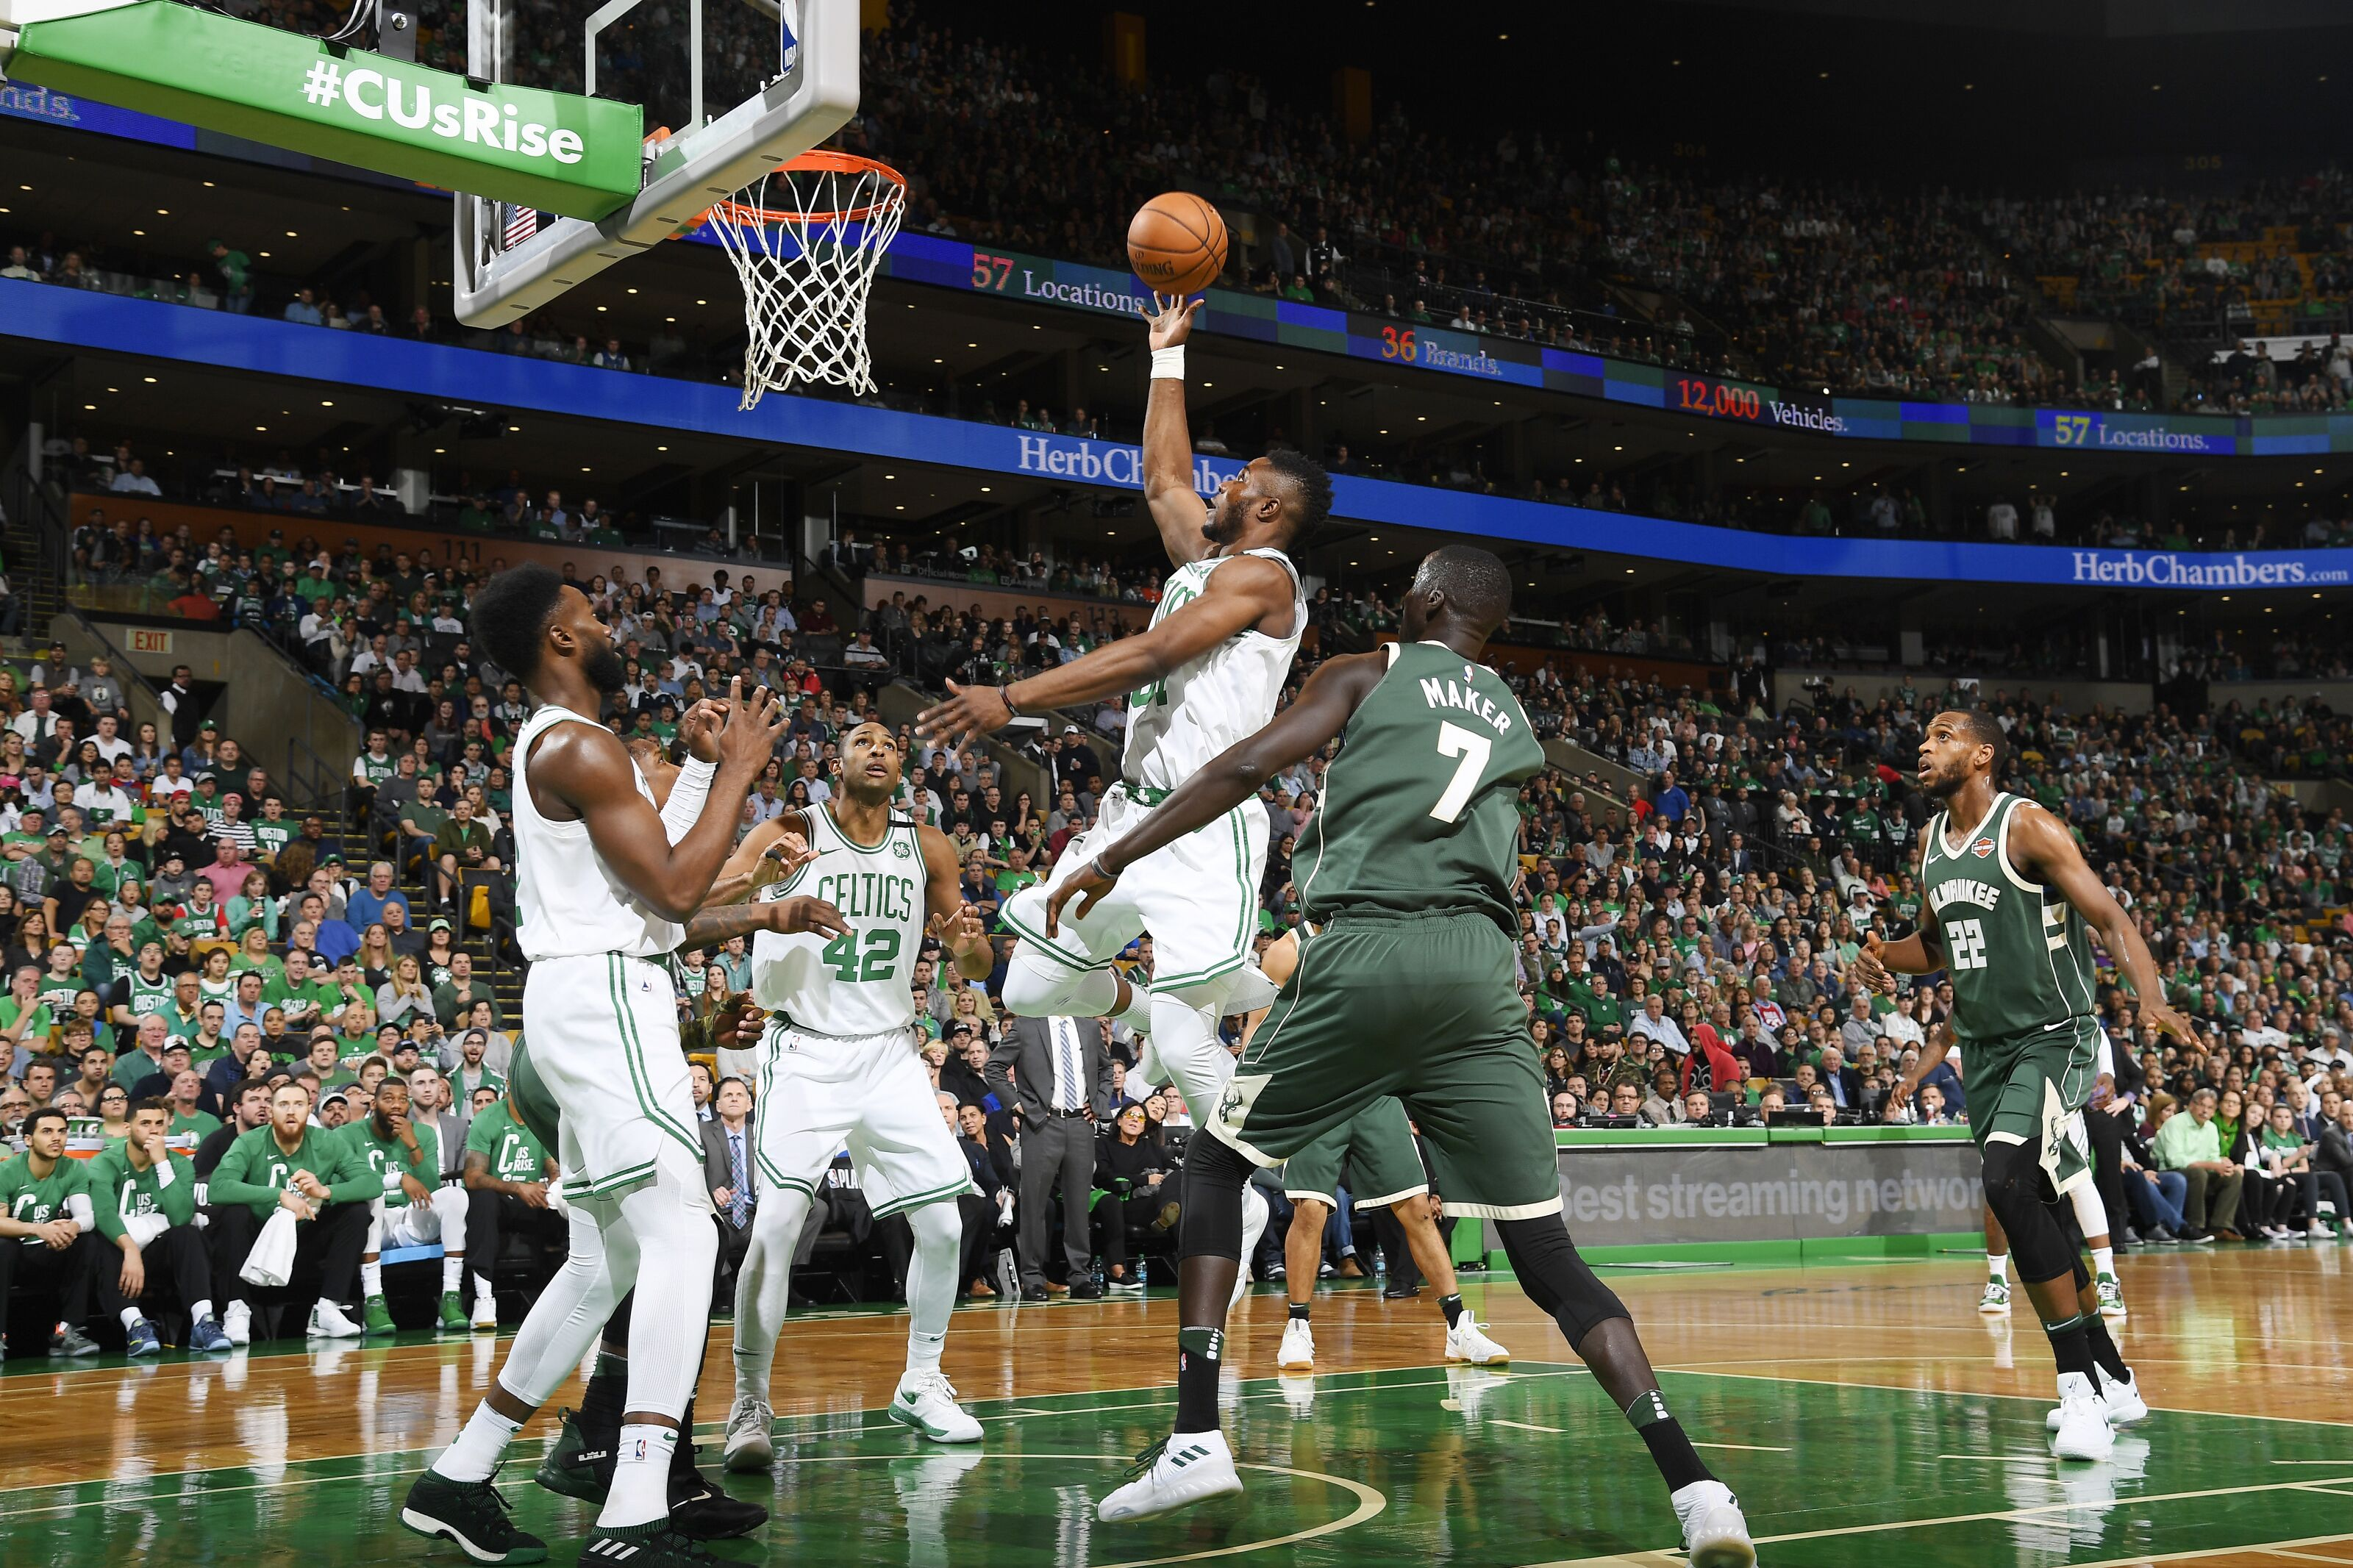 952525920-milwaukee-bucks-v-boston-celtics-game-seven.jpg